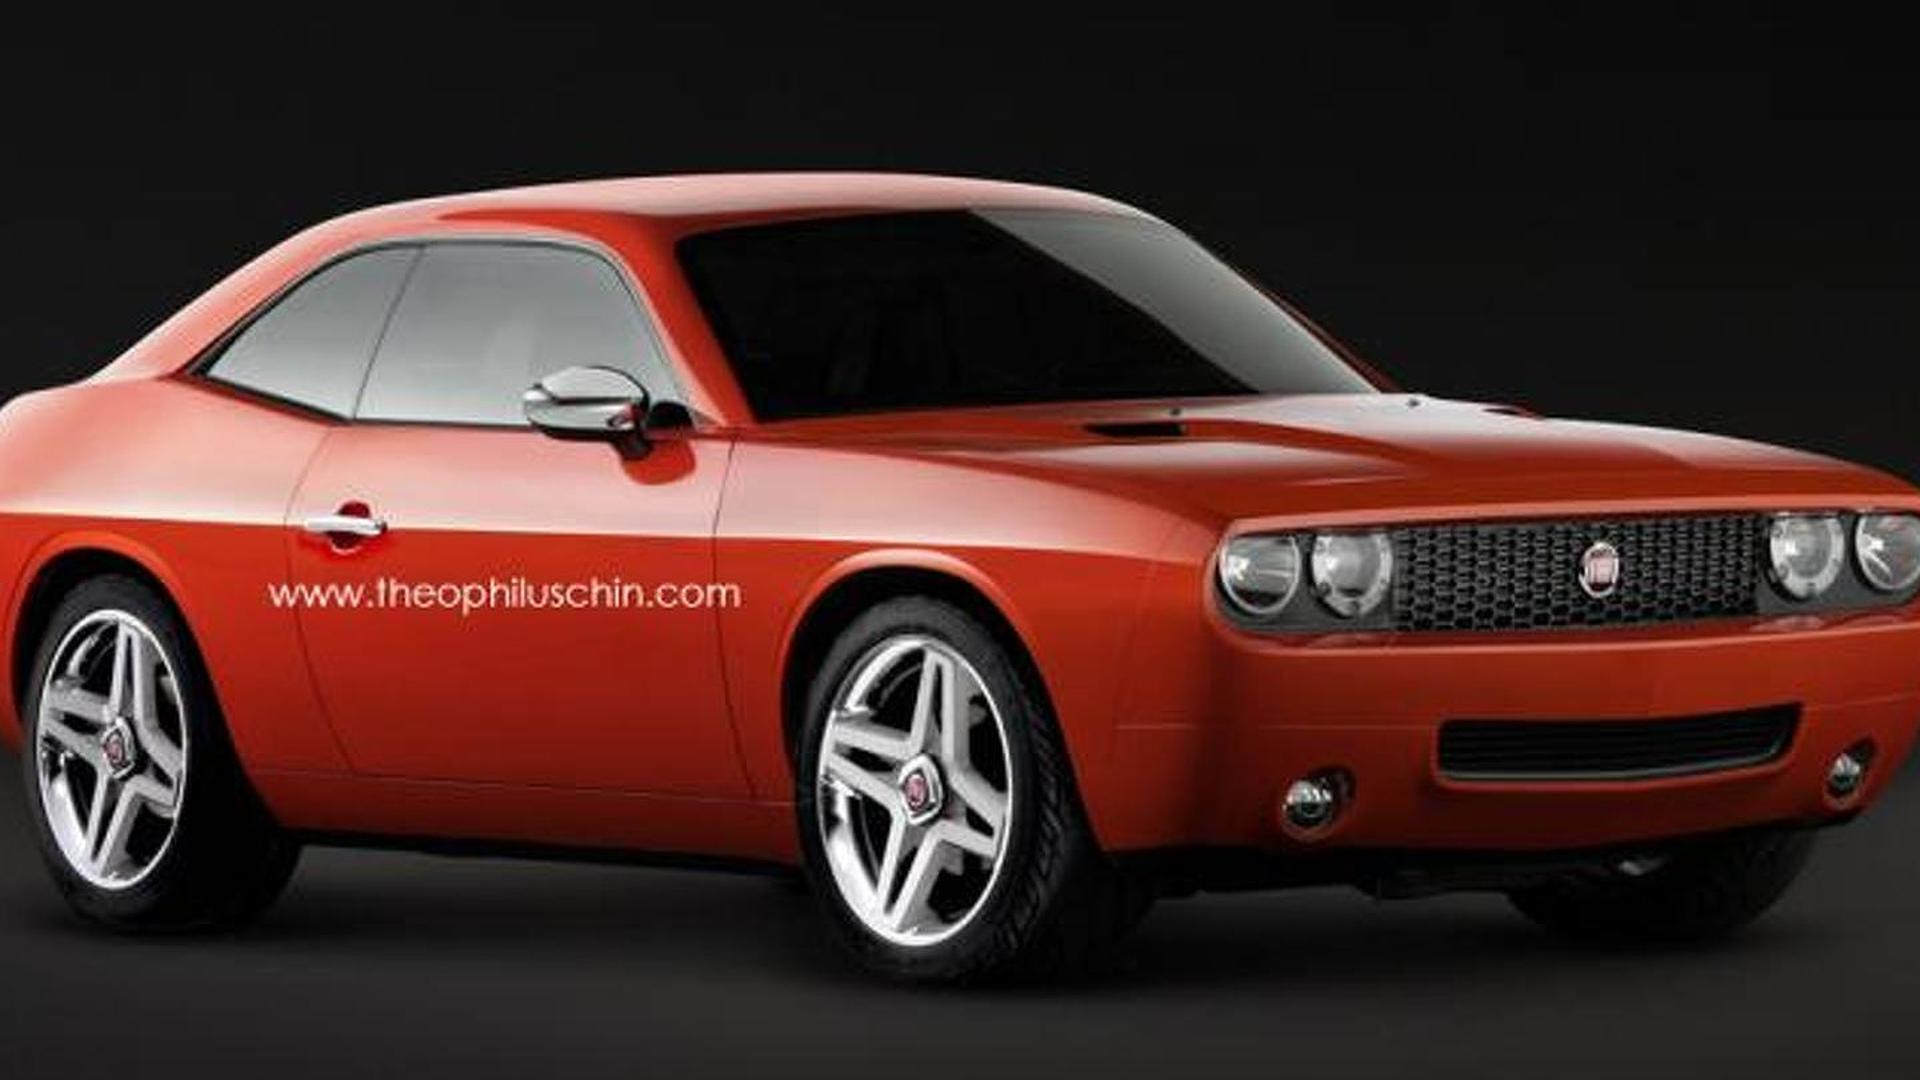 Fiat 128 Sport Coupe resurrected through Dodge Challenger based rendering